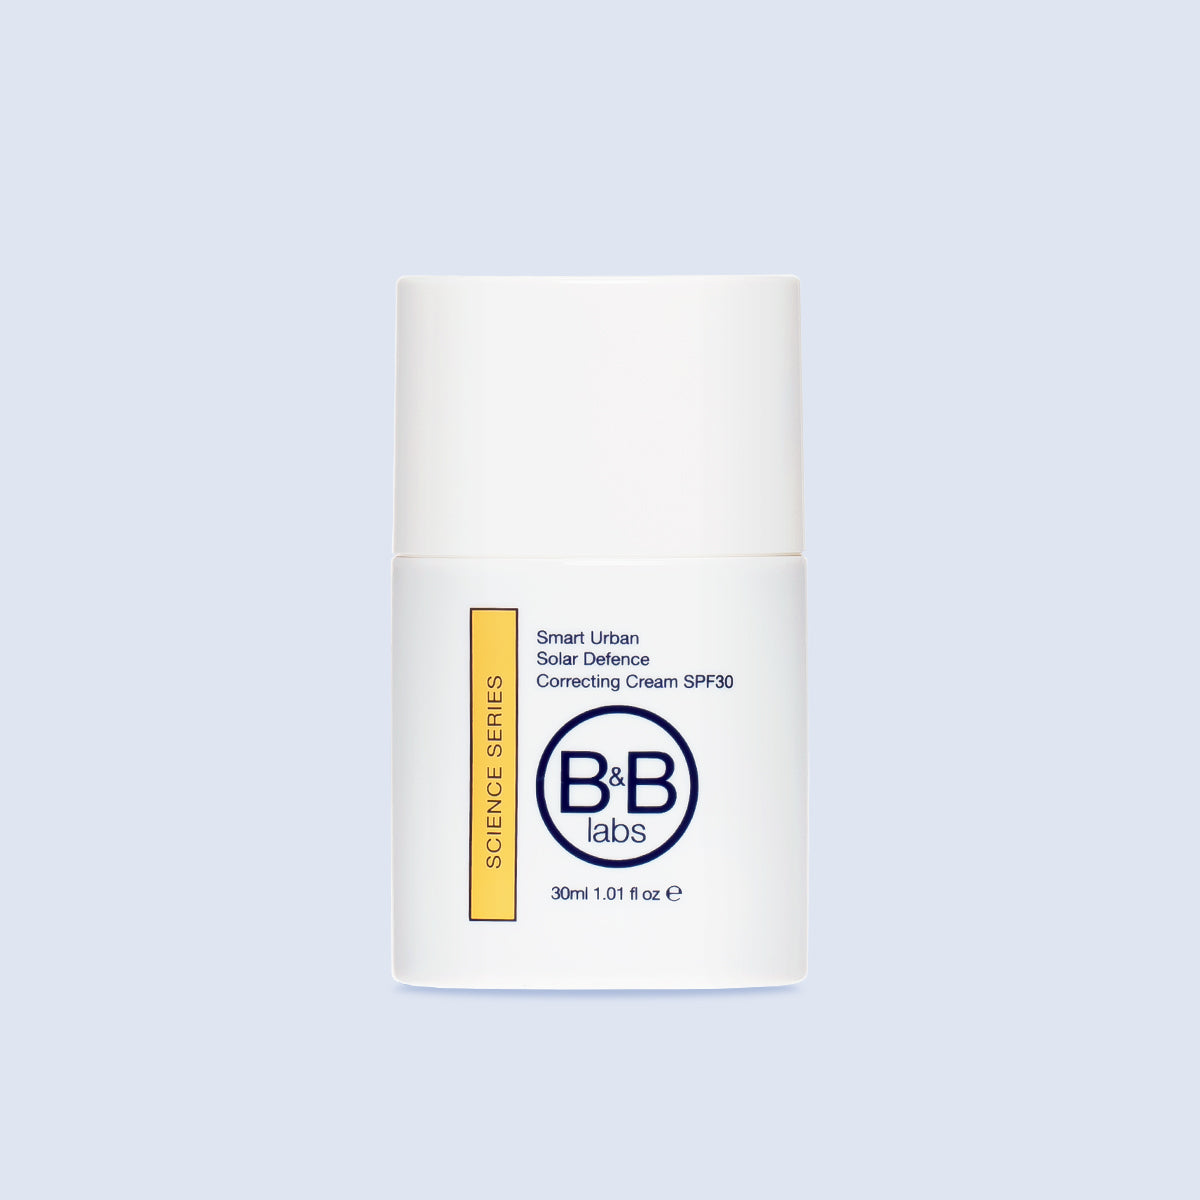 Smart Urban Solar Defence Correcting Cream SPF30